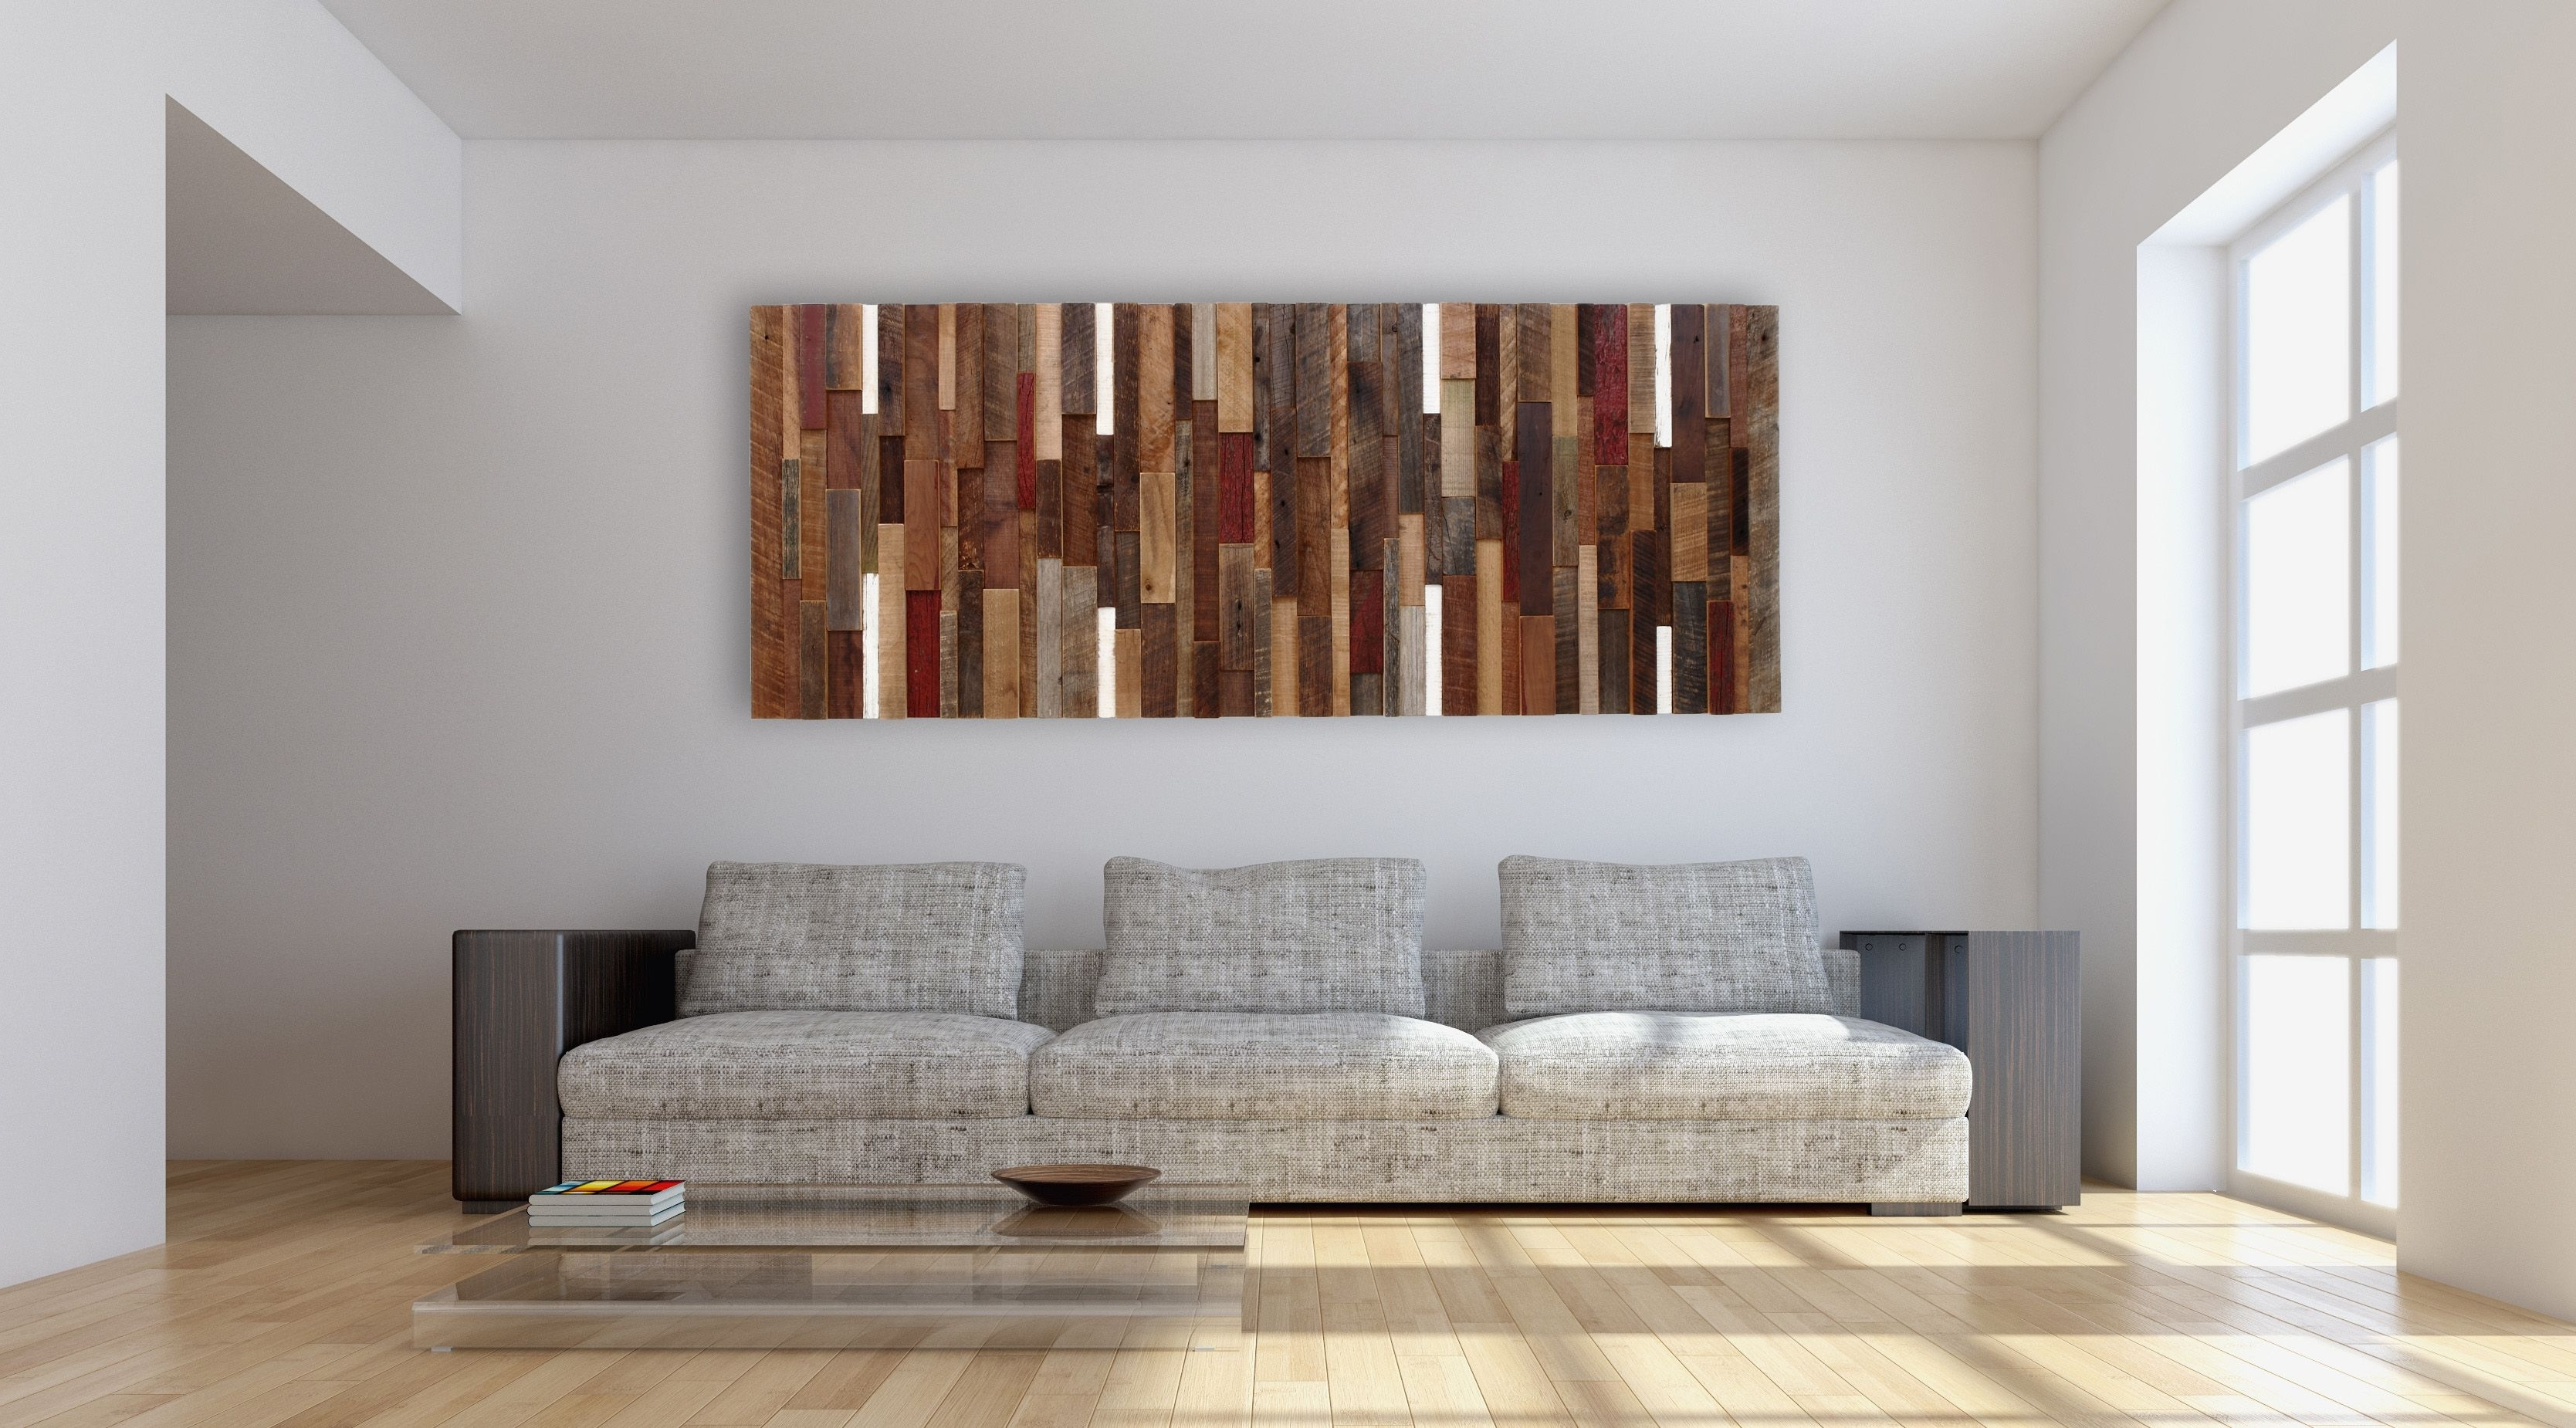 Hand Made Reclaimed Wood Wall Art, Made Intirely Of Reclaimed Barn Within Latest Wall Art On Wood (View 14 of 15)